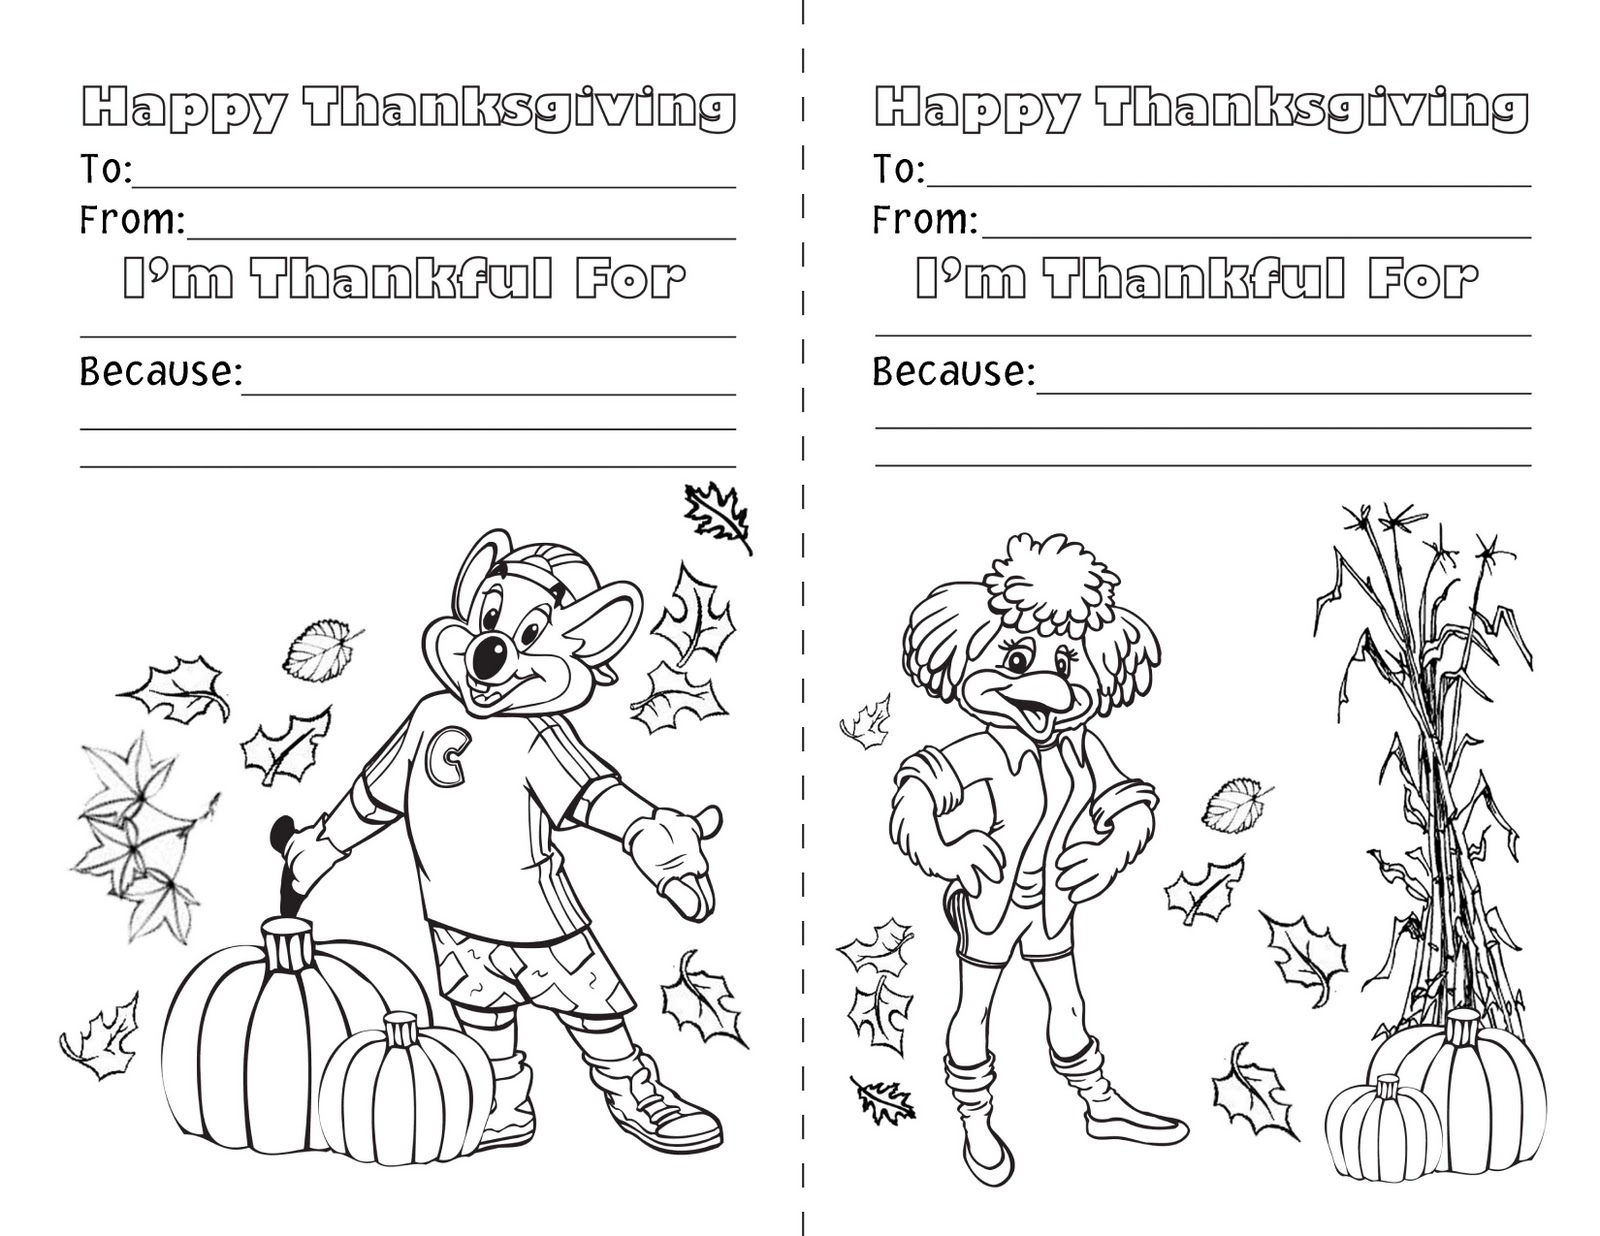 Free Thank You Cards From Chuck E Cheese